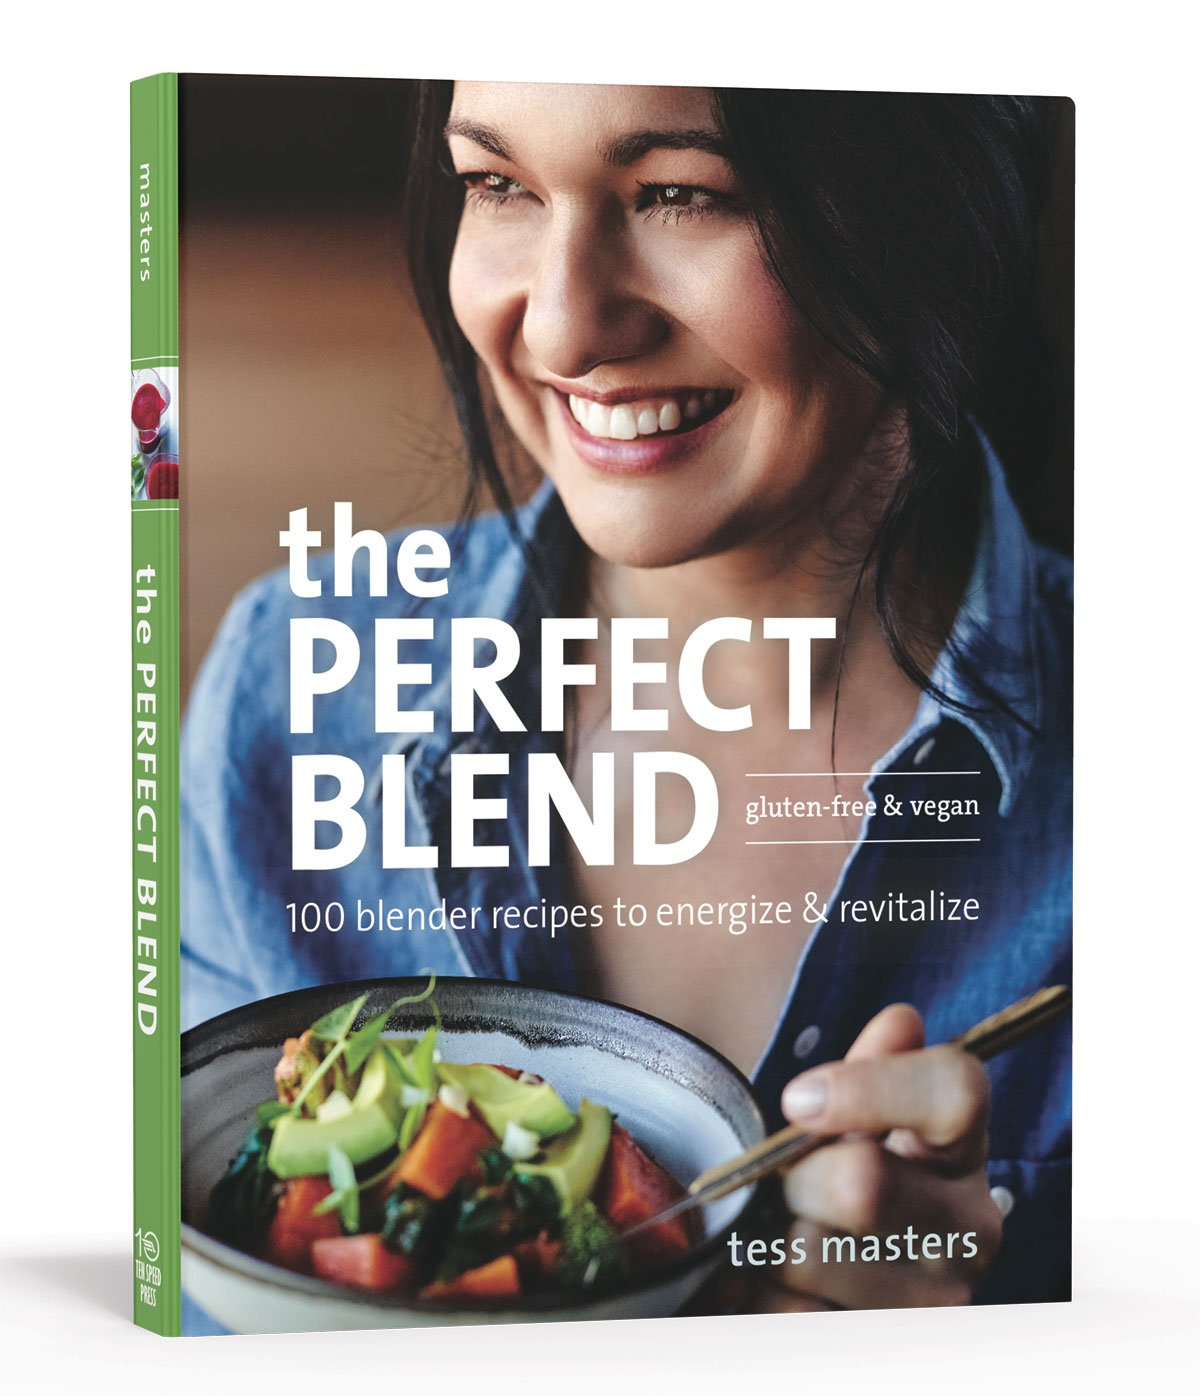 perfecrt-blend-cookbook-review